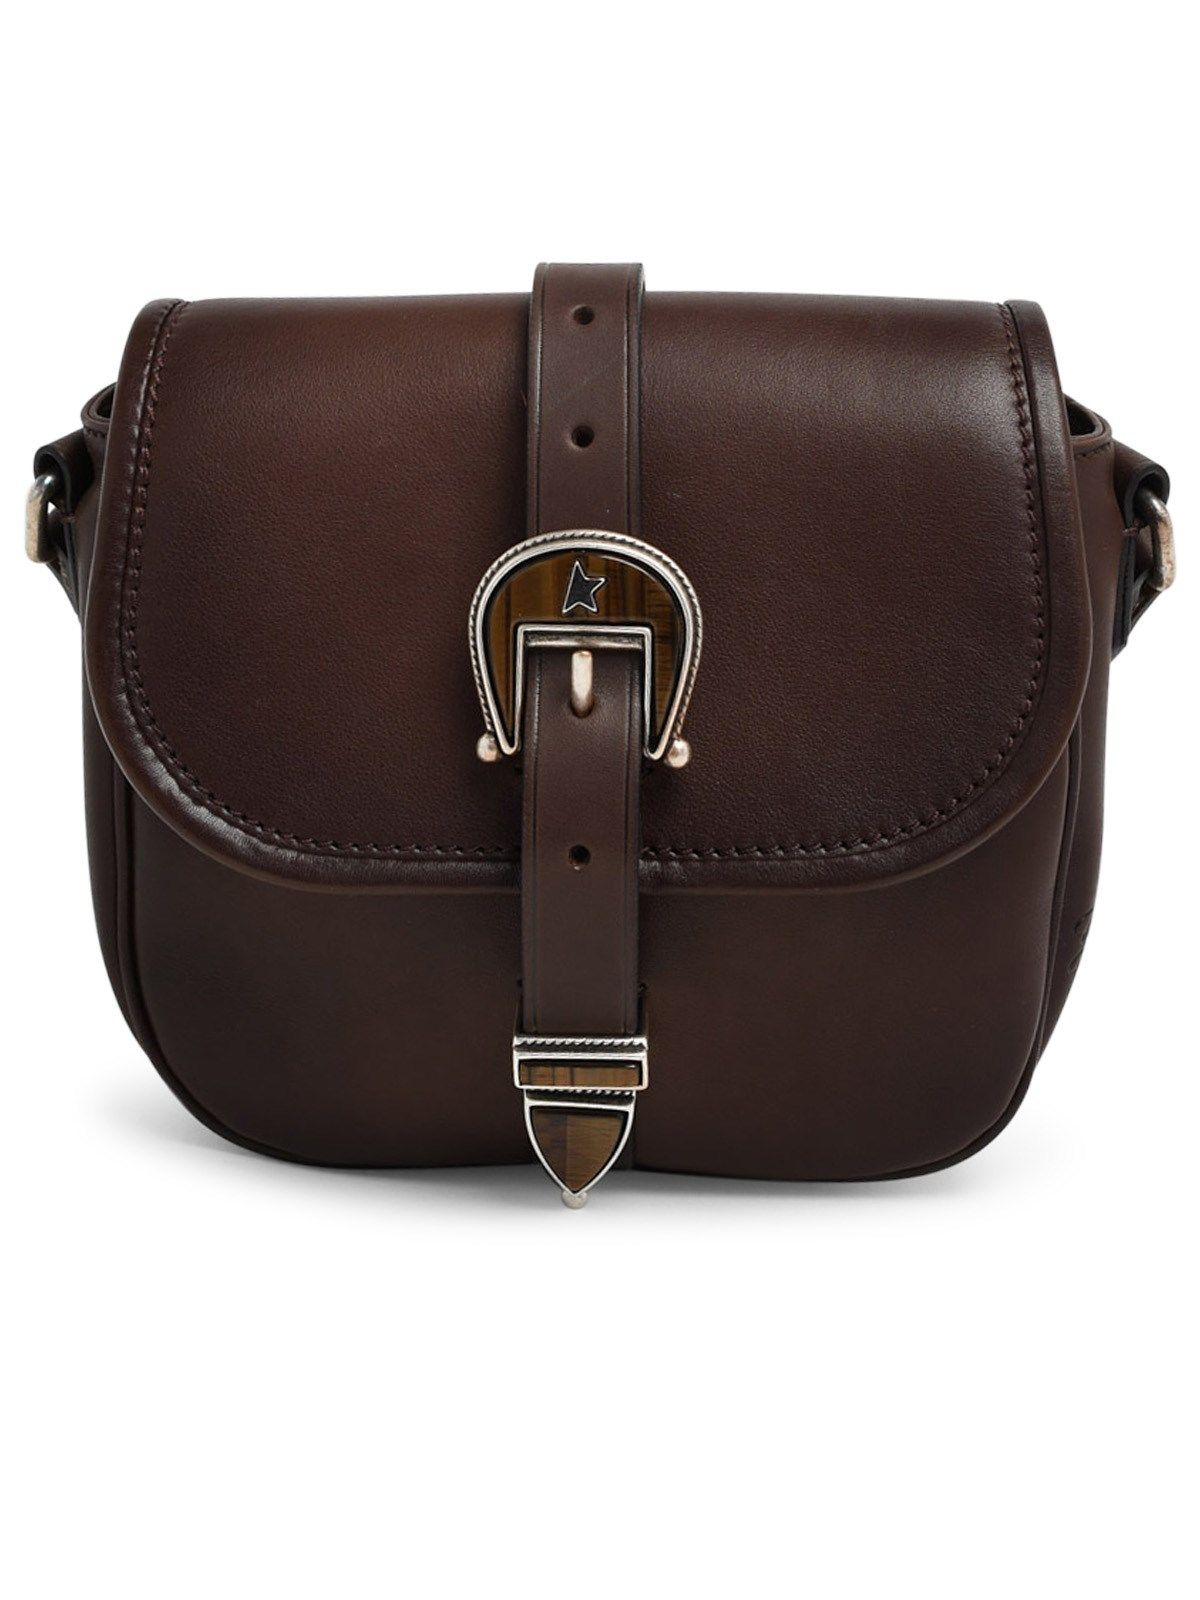 Golden Goose GOLDEN GOOSE WOMEN'S BROWN SHOULDER BAG